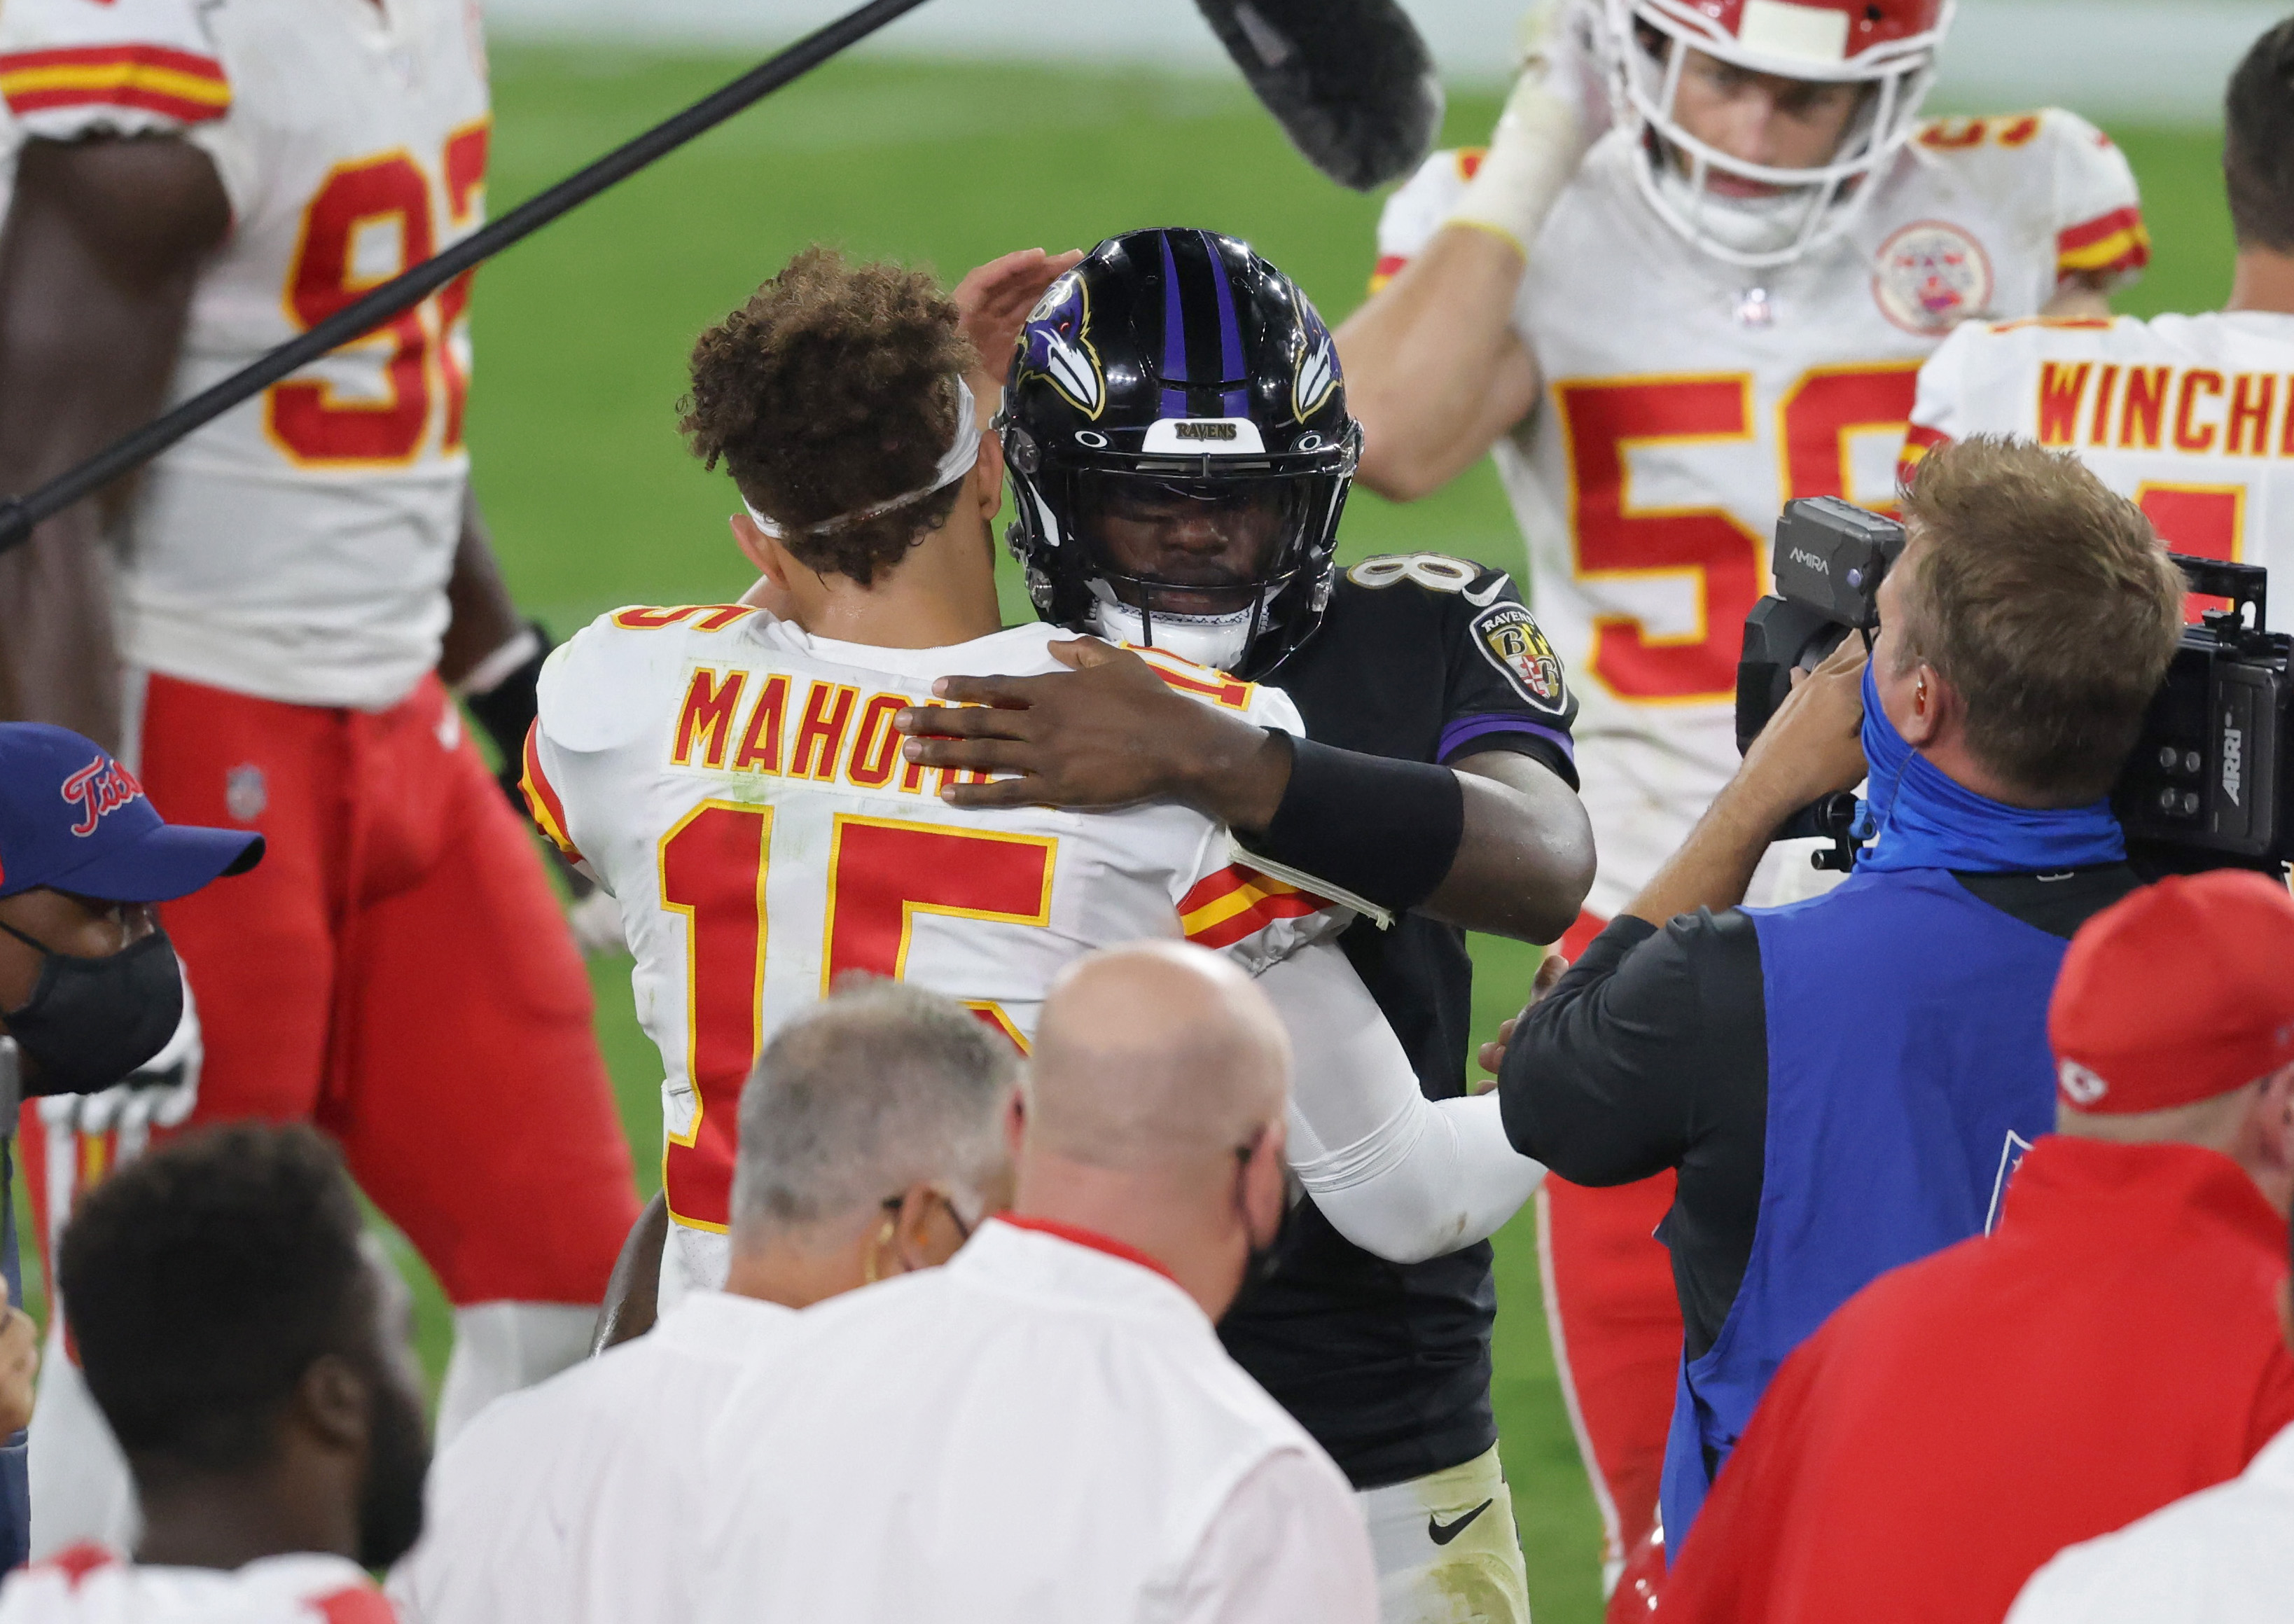 Patrick Mahomes #15 of the Kansas City Chiefs and Lamar Jackson #8 of the Baltimore Ravens greet each other at the end of the game at M&T Bank Stadium on September 28, 2020 in Baltimore, Maryland.